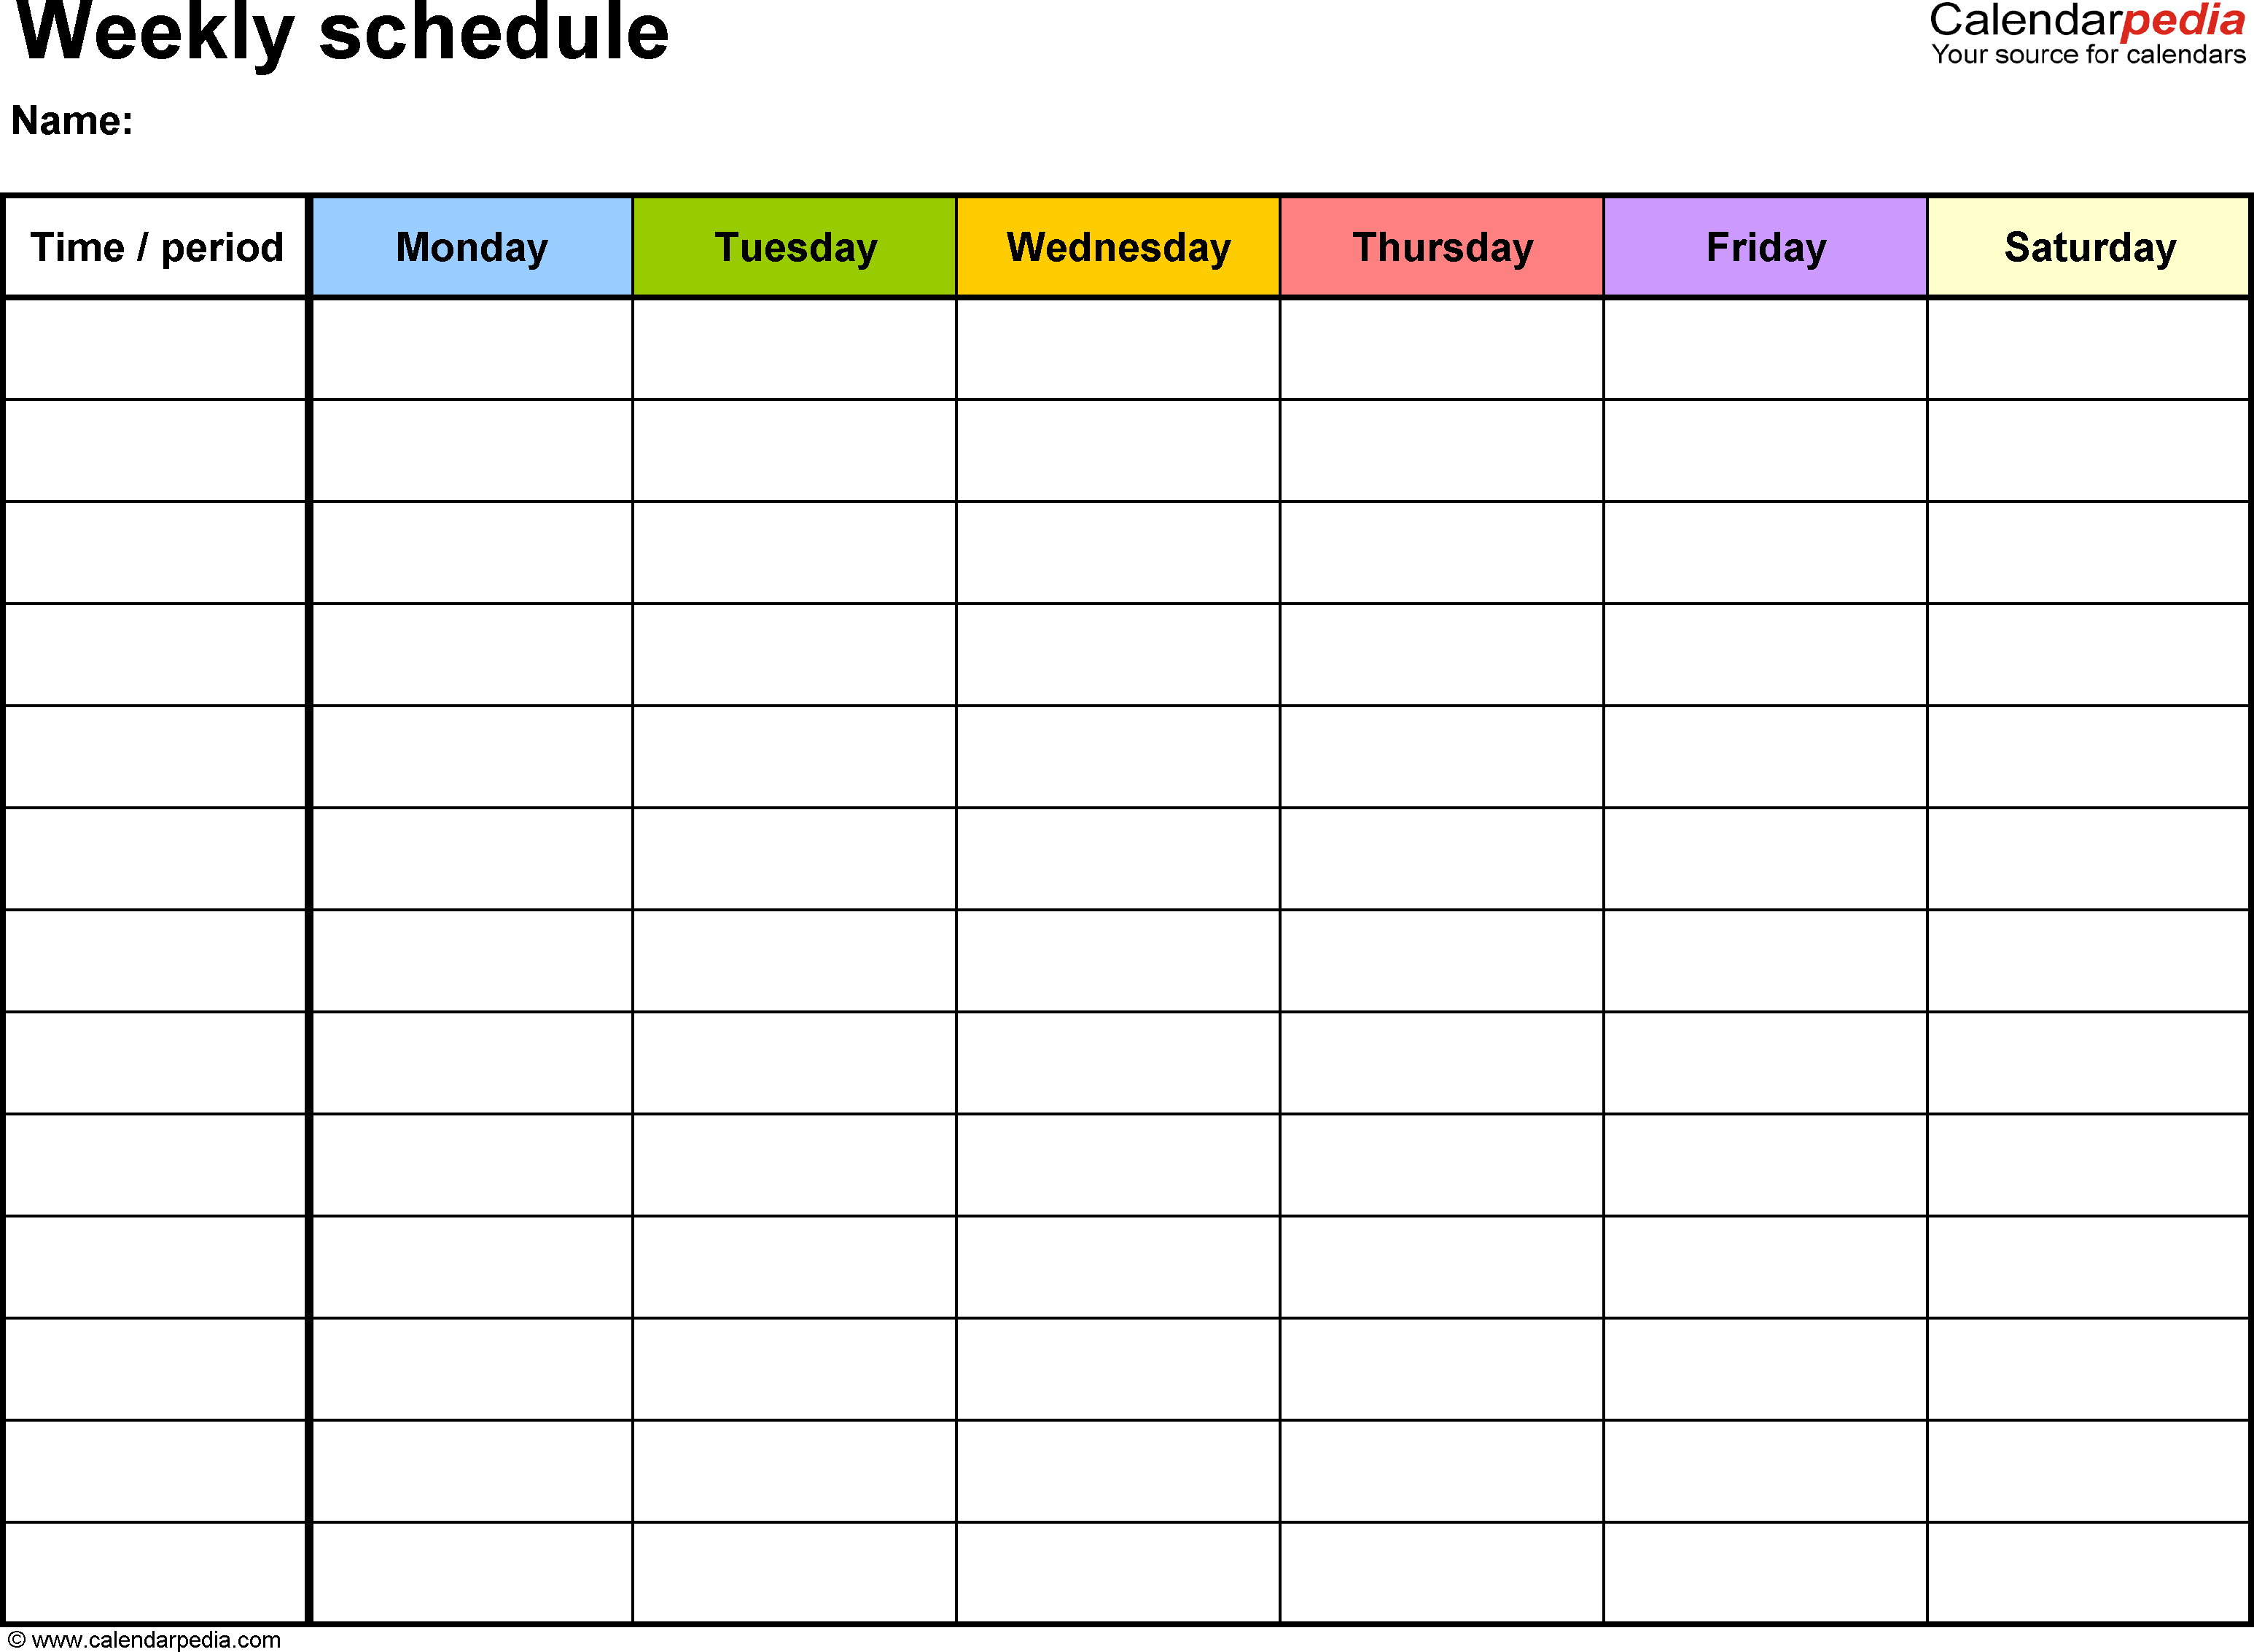 Free Weekly Schedule Templates For Word - 18 Templates with 5 Day Calendar Template Free